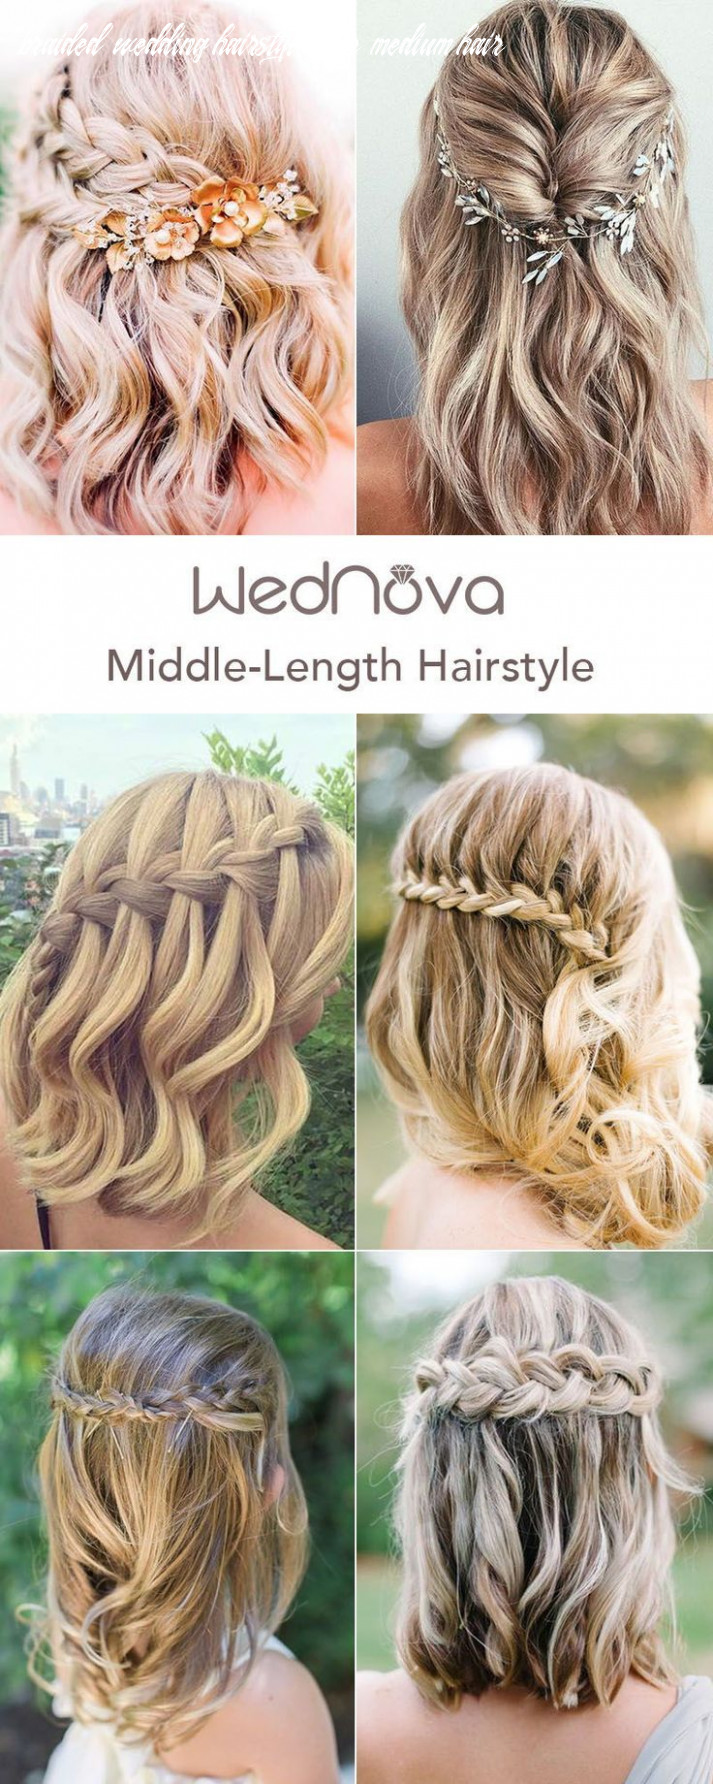 9 easy wedding hairstyles best guide for your bridesmaids in 9